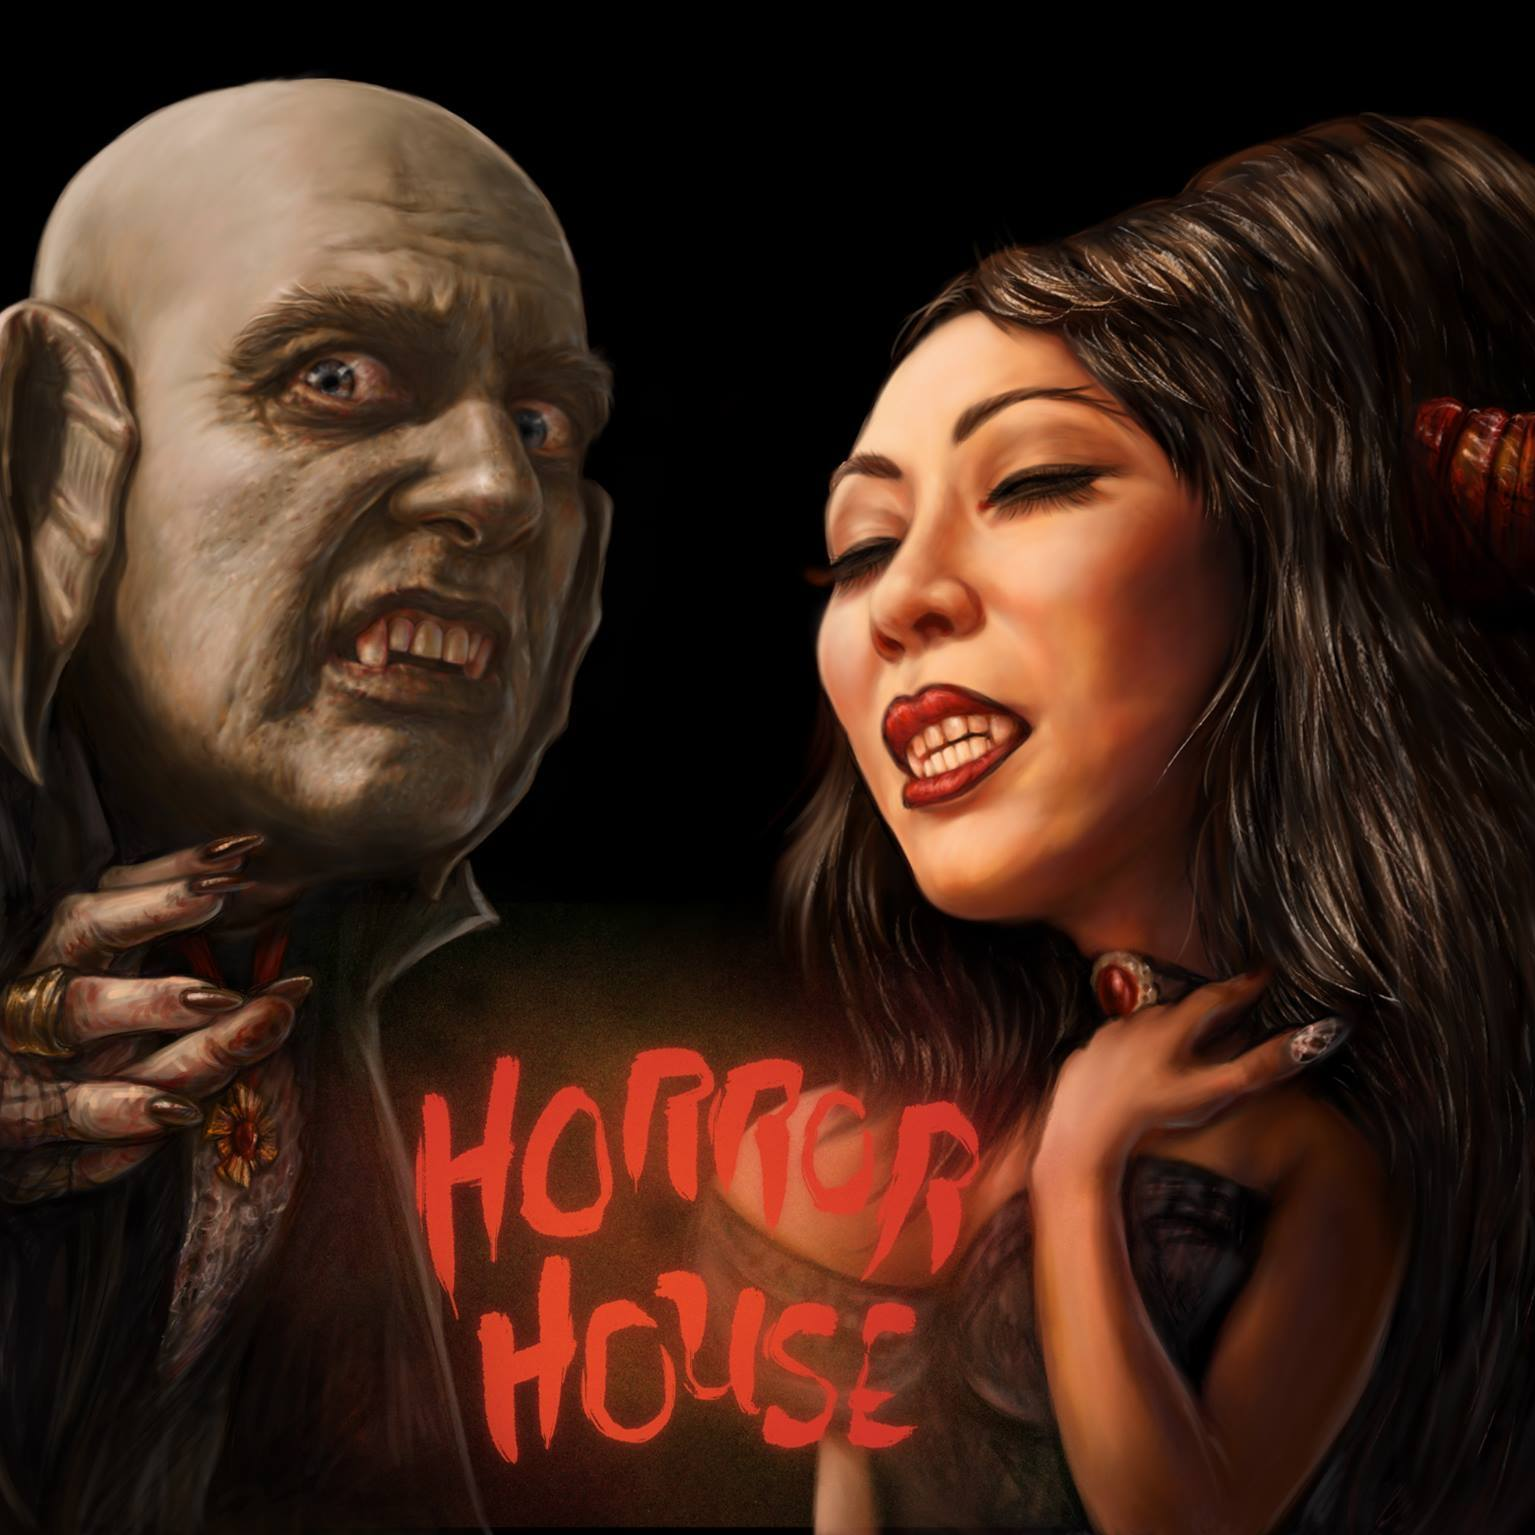 THE VORTEXX WELCOMES YOU TO THE HORROR HOUSE